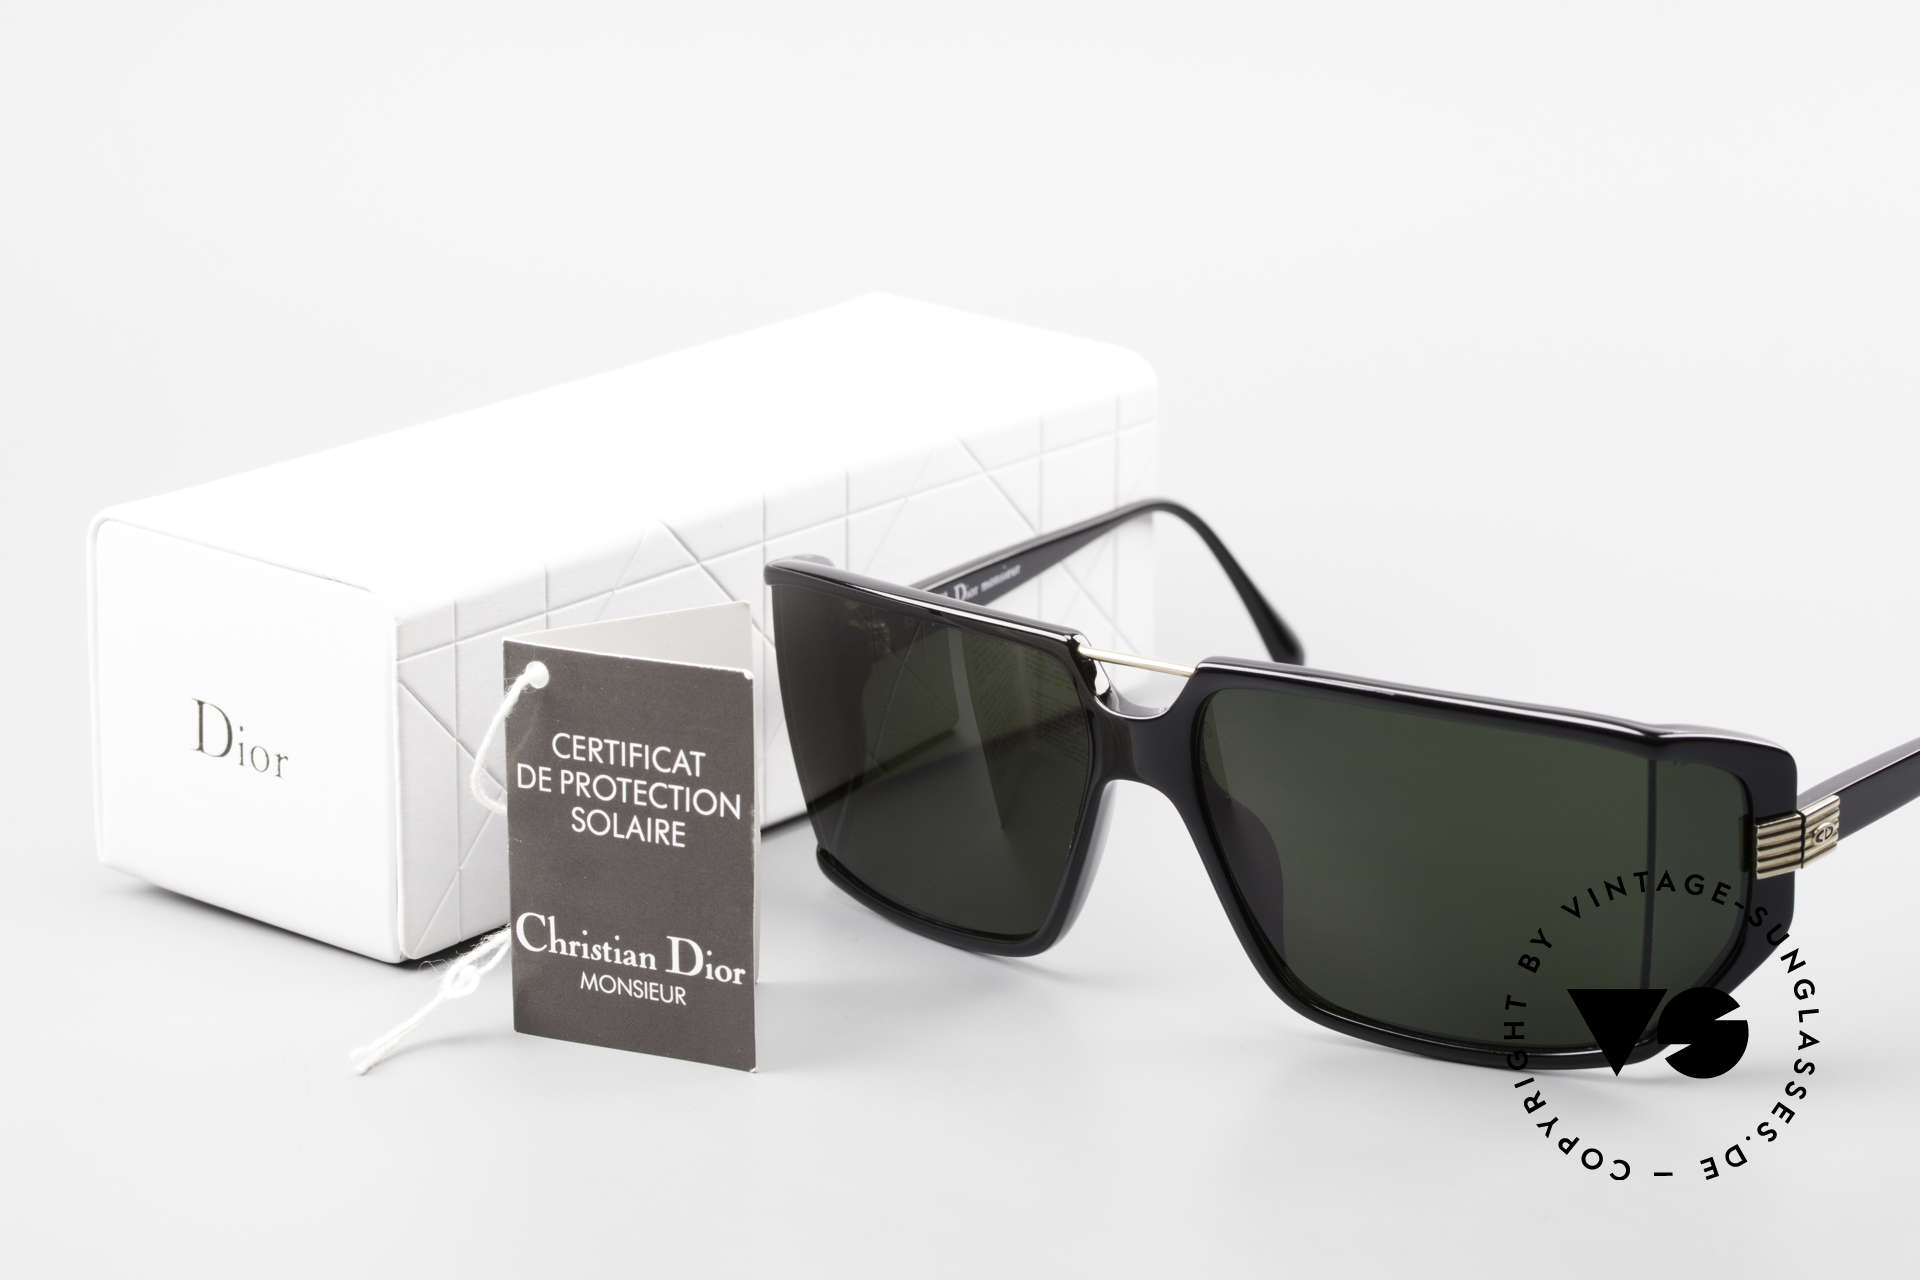 Christian Dior 2440 80's Dior Monsieur Sunglasses, Size: large, Made for Men